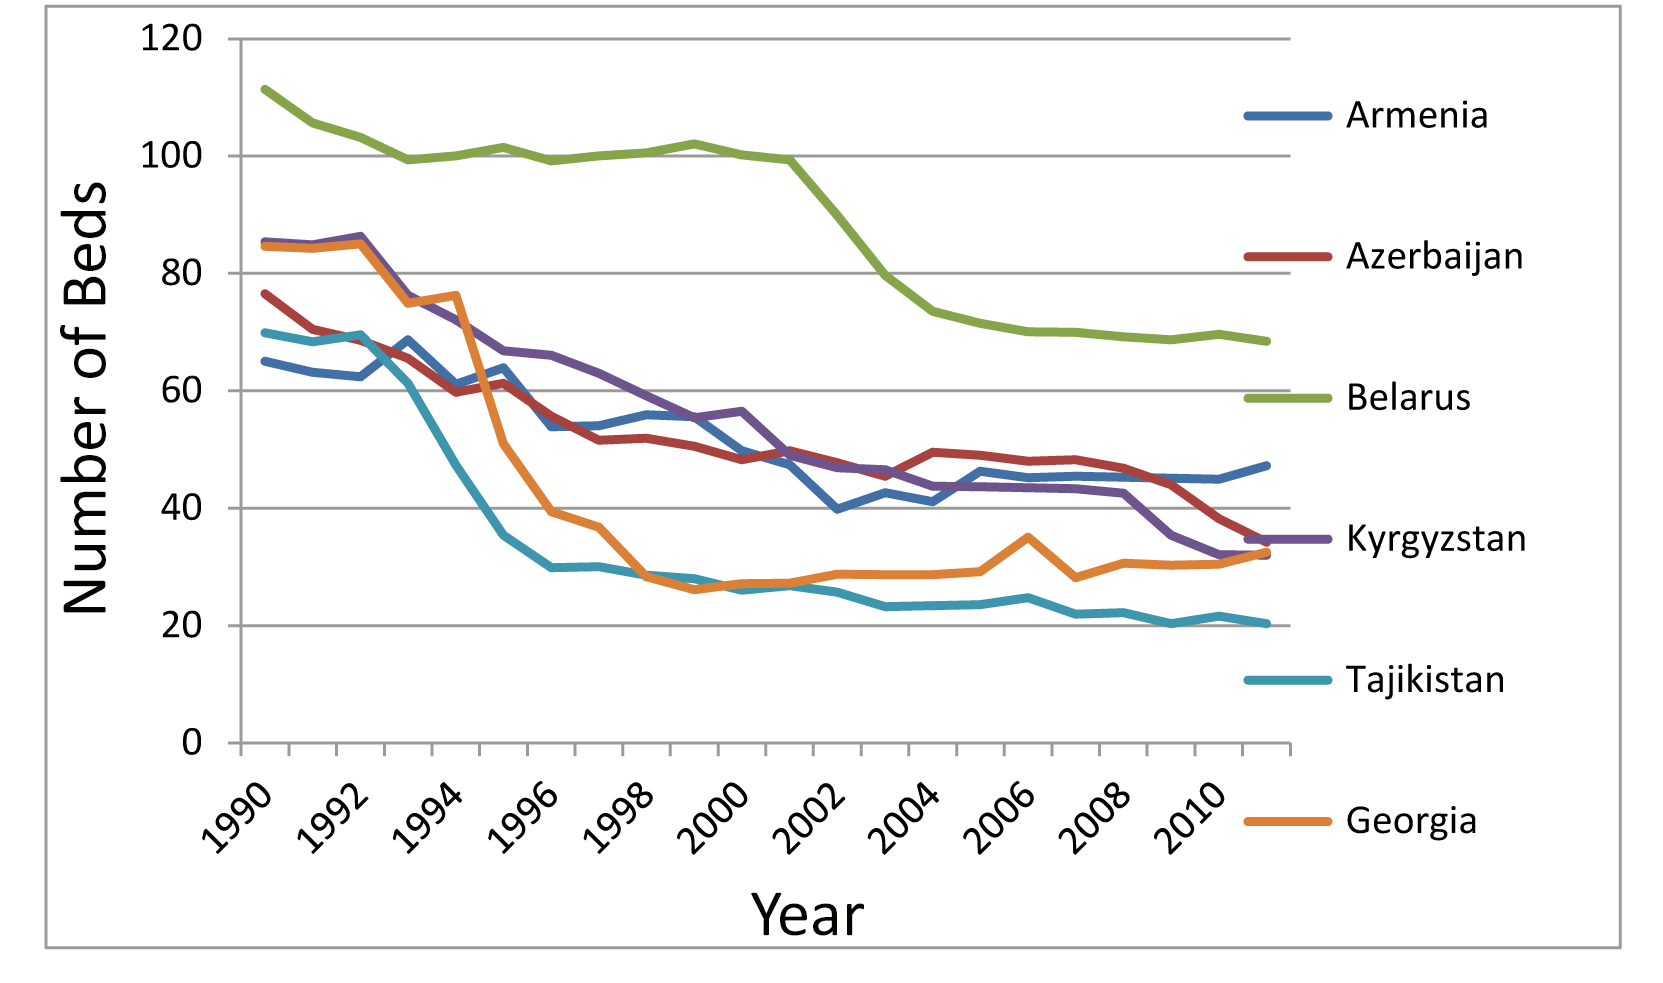 Beds in psychiatric hospitals (selected Commonwealth of Independent States countries).